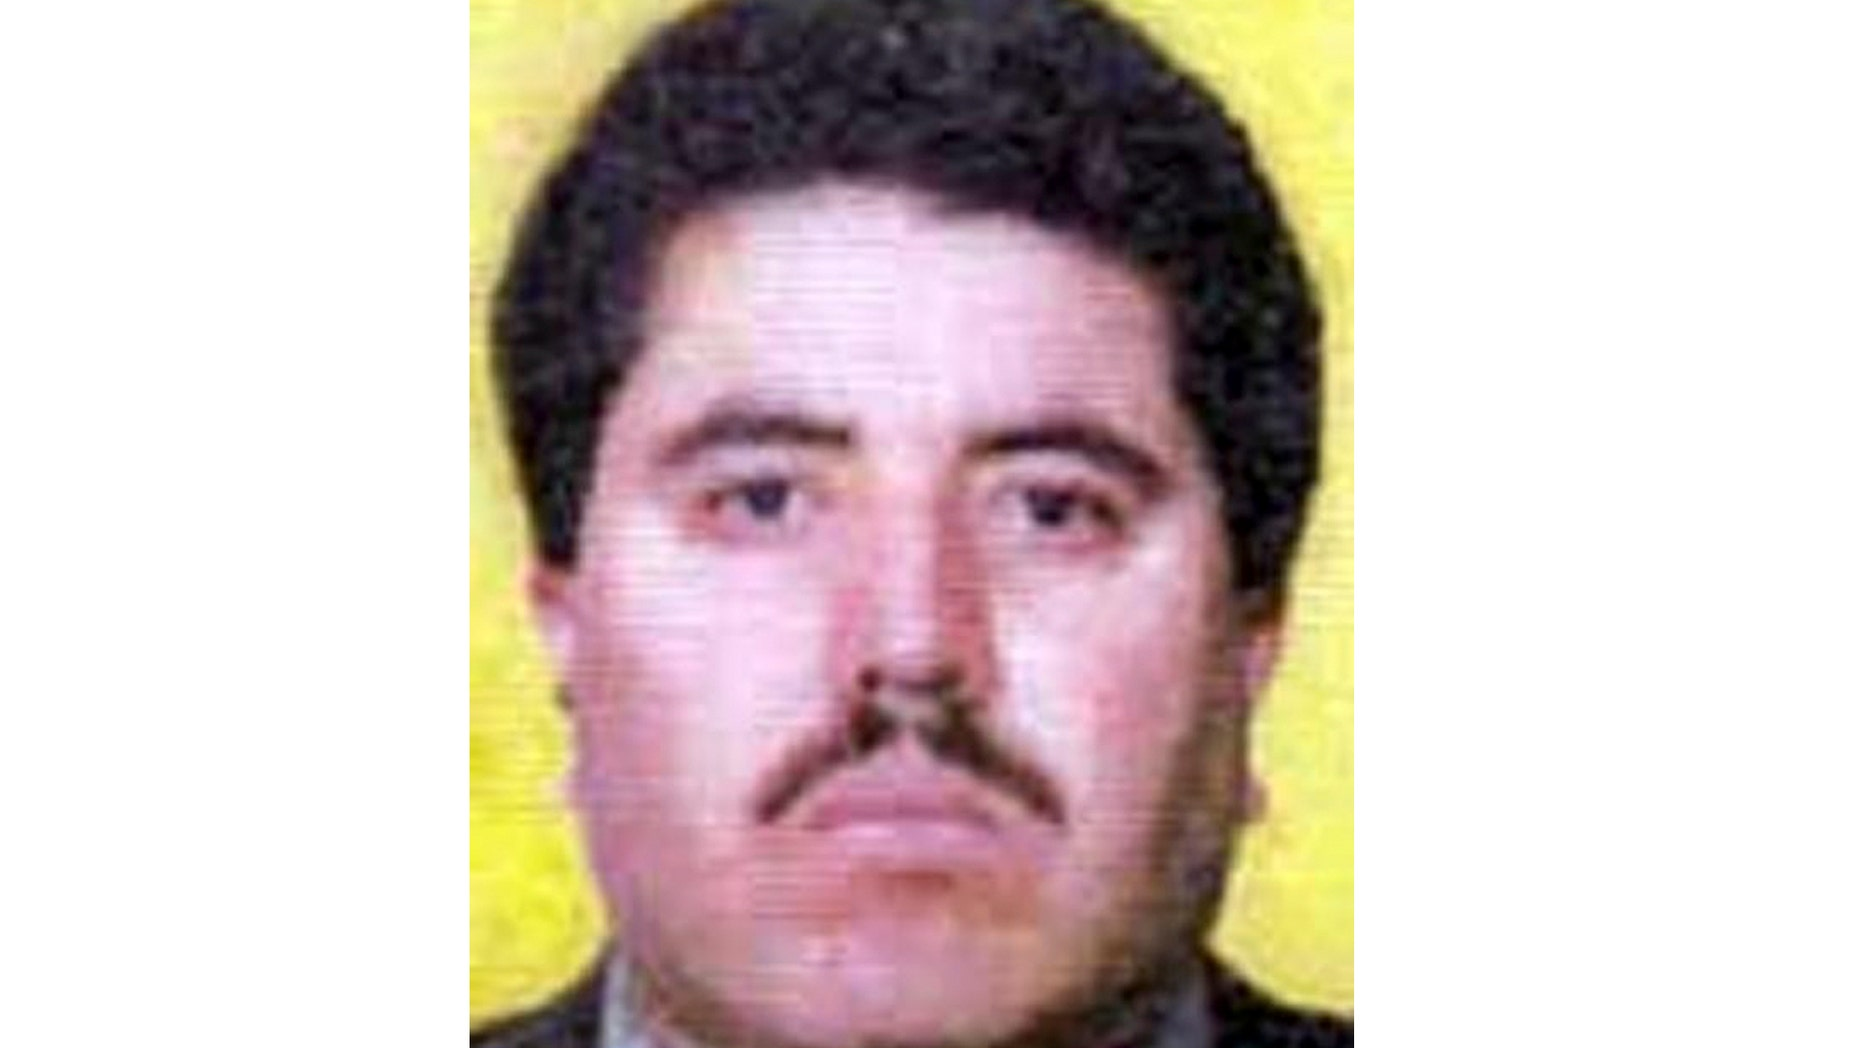 This undated image taken from the FBI webpage shows Vicente Carrillo Fuentes, the alleged leader of the Juarez drug cartel. Mexican officials said Thursday, Oct. 9, 2014, that Carrillo Fuentes has been arrested in the northern city of Torreon. (AP Photo/FBI website)